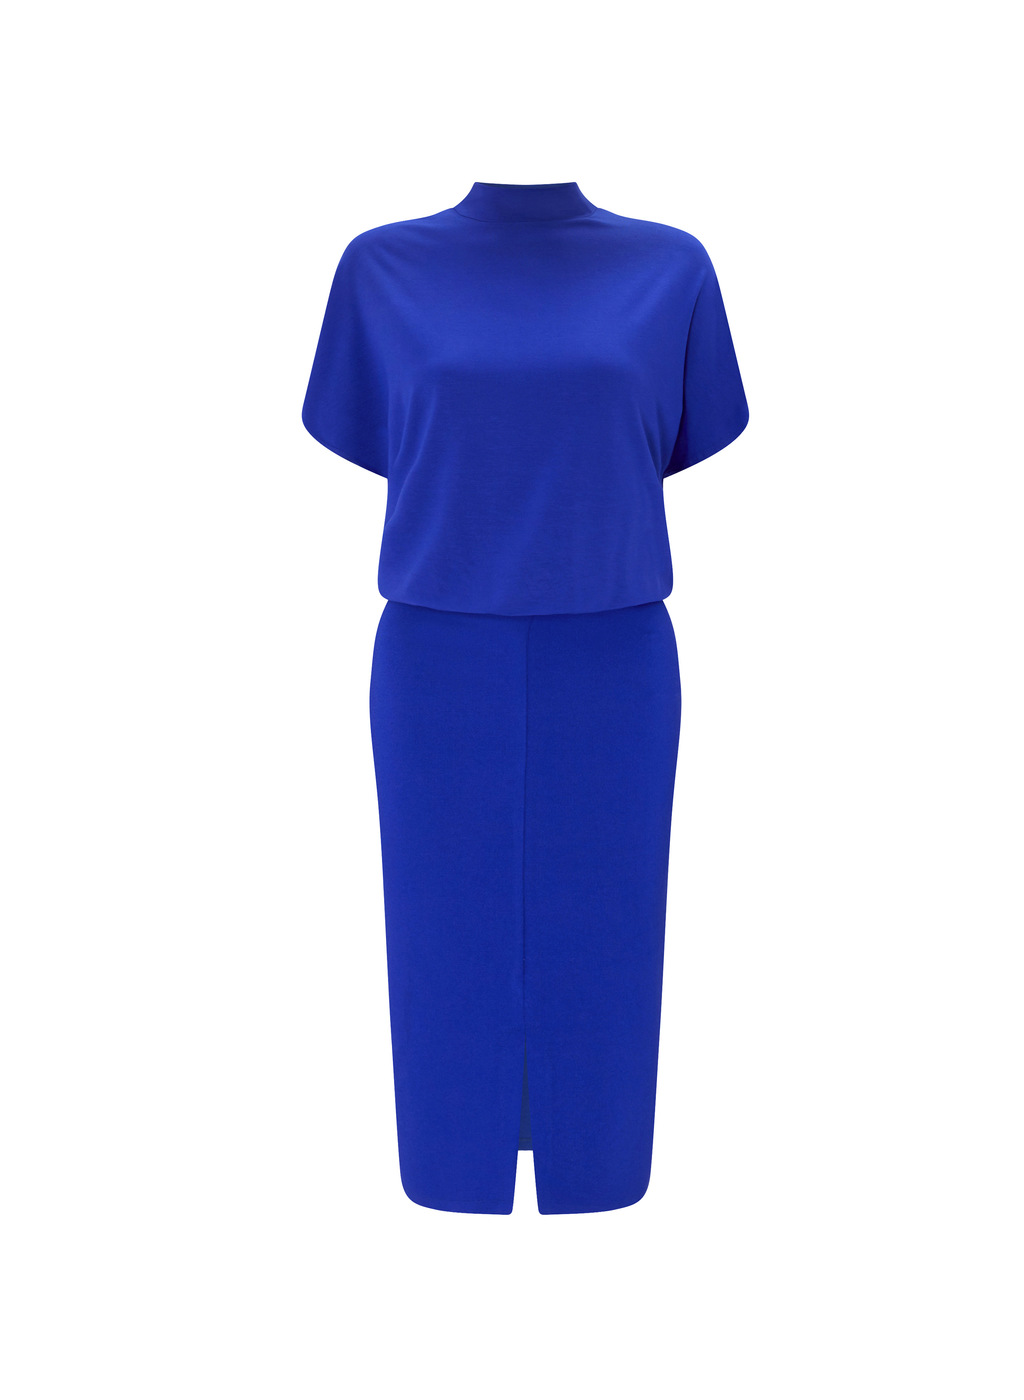 Womenswear Bernwood Shift Dress - style: shift; pattern: plain; neckline: high neck; predominant colour: royal blue; occasions: evening, creative work; length: on the knee; fit: body skimming; fibres: polyester/polyamide - 100%; sleeve length: short sleeve; sleeve style: standard; pattern type: fabric; texture group: other - light to midweight; season: a/w 2016; wardrobe: highlight